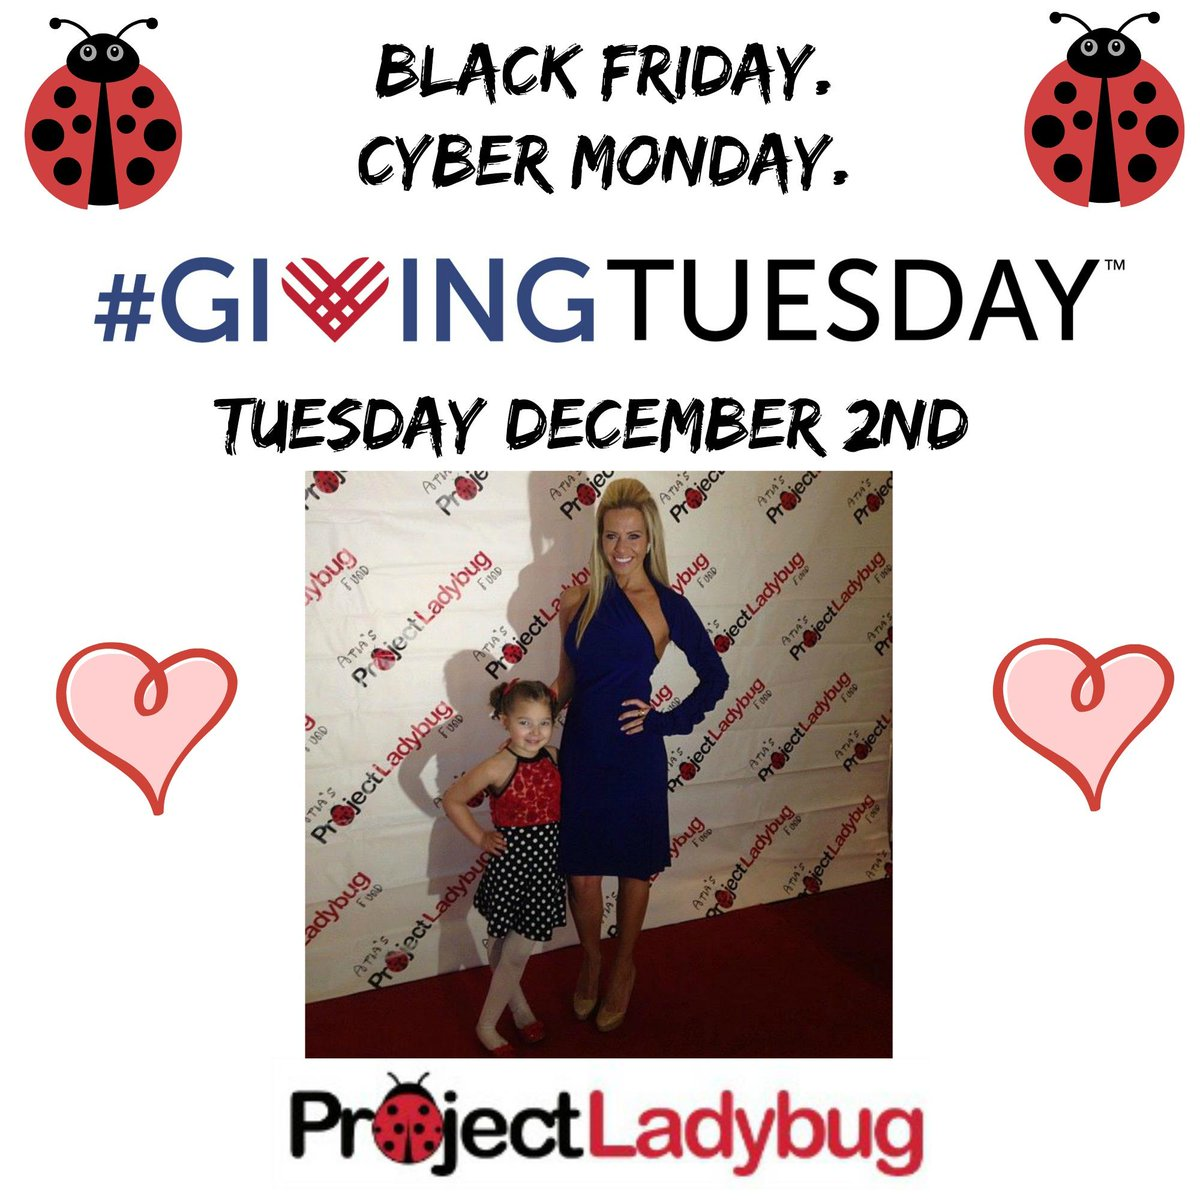 Tuesday 12/2 is #GivingTuesday Consider helping our little angels! #giveback #dogood http://t.co/p41jgLAVB0